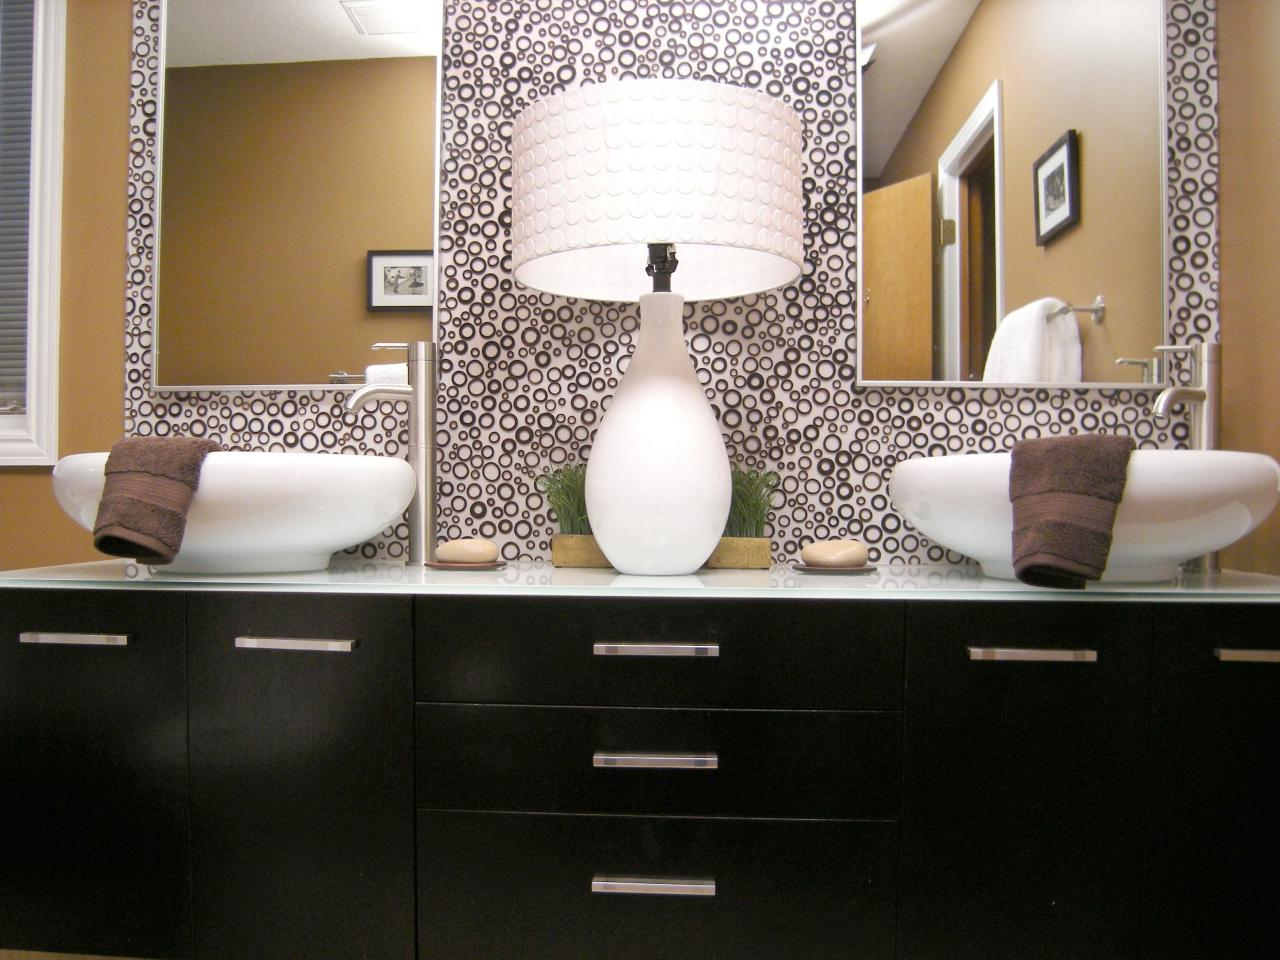 mirrored vanity bathroom